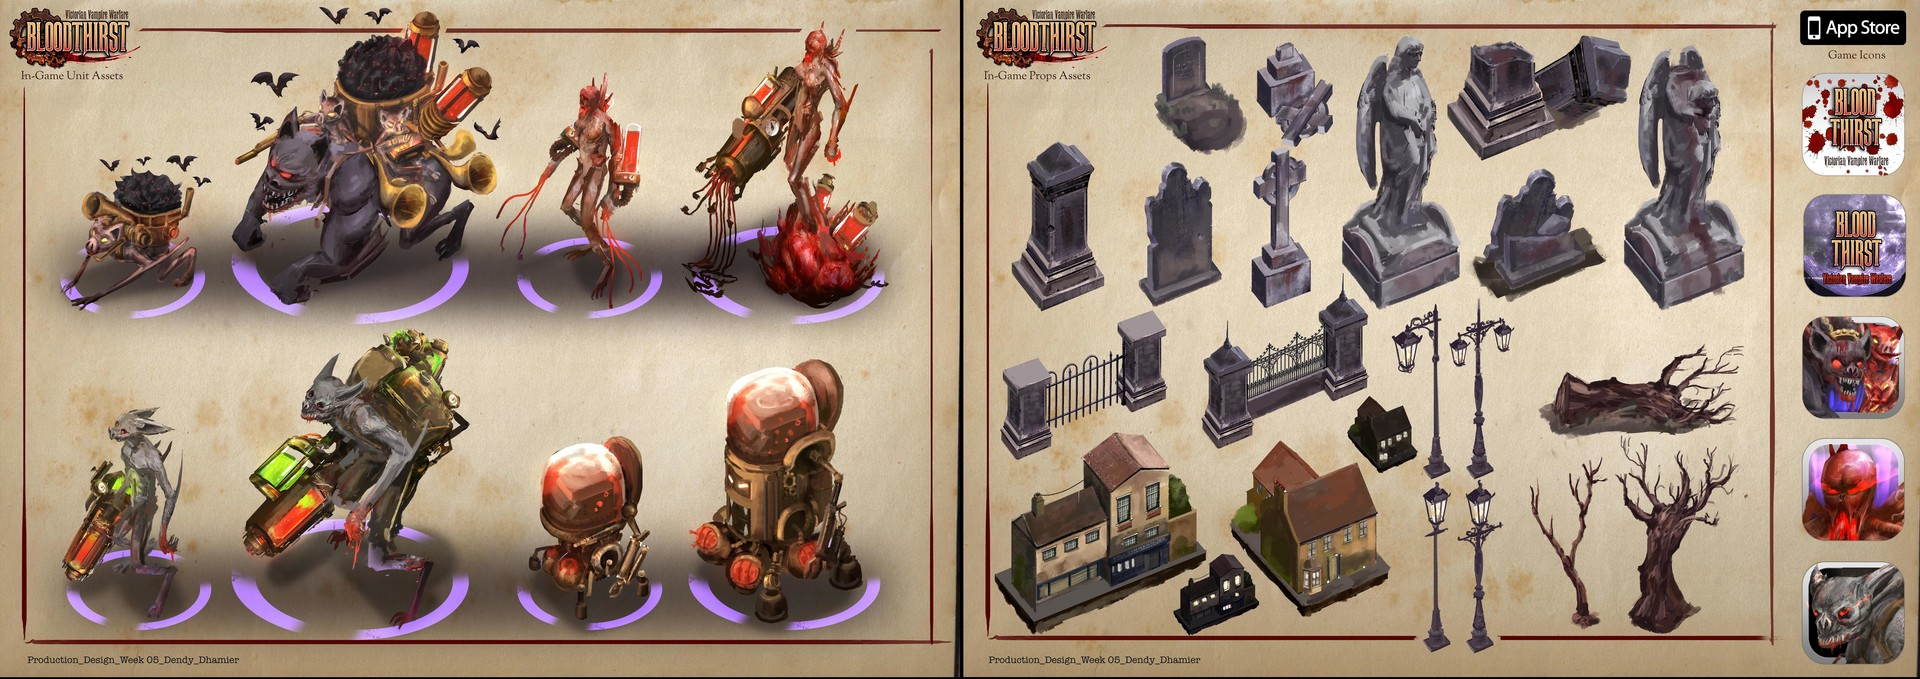 In-Game assets, props and icon design.